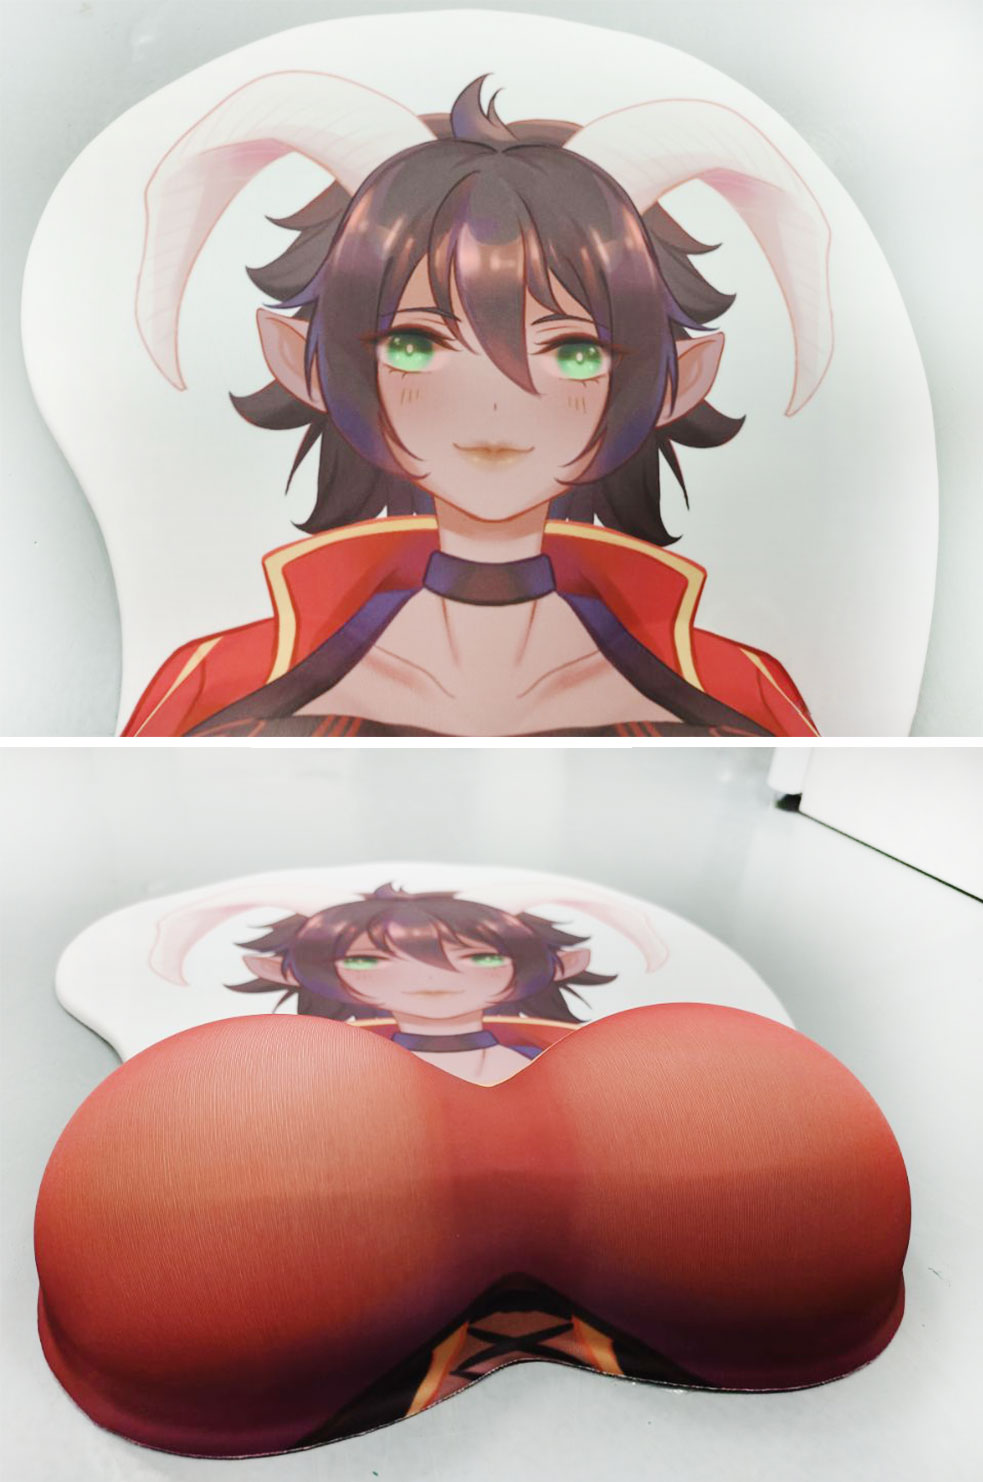 pink double ponytail girl life size oppai mousepad 1555 - Anime Mousepads